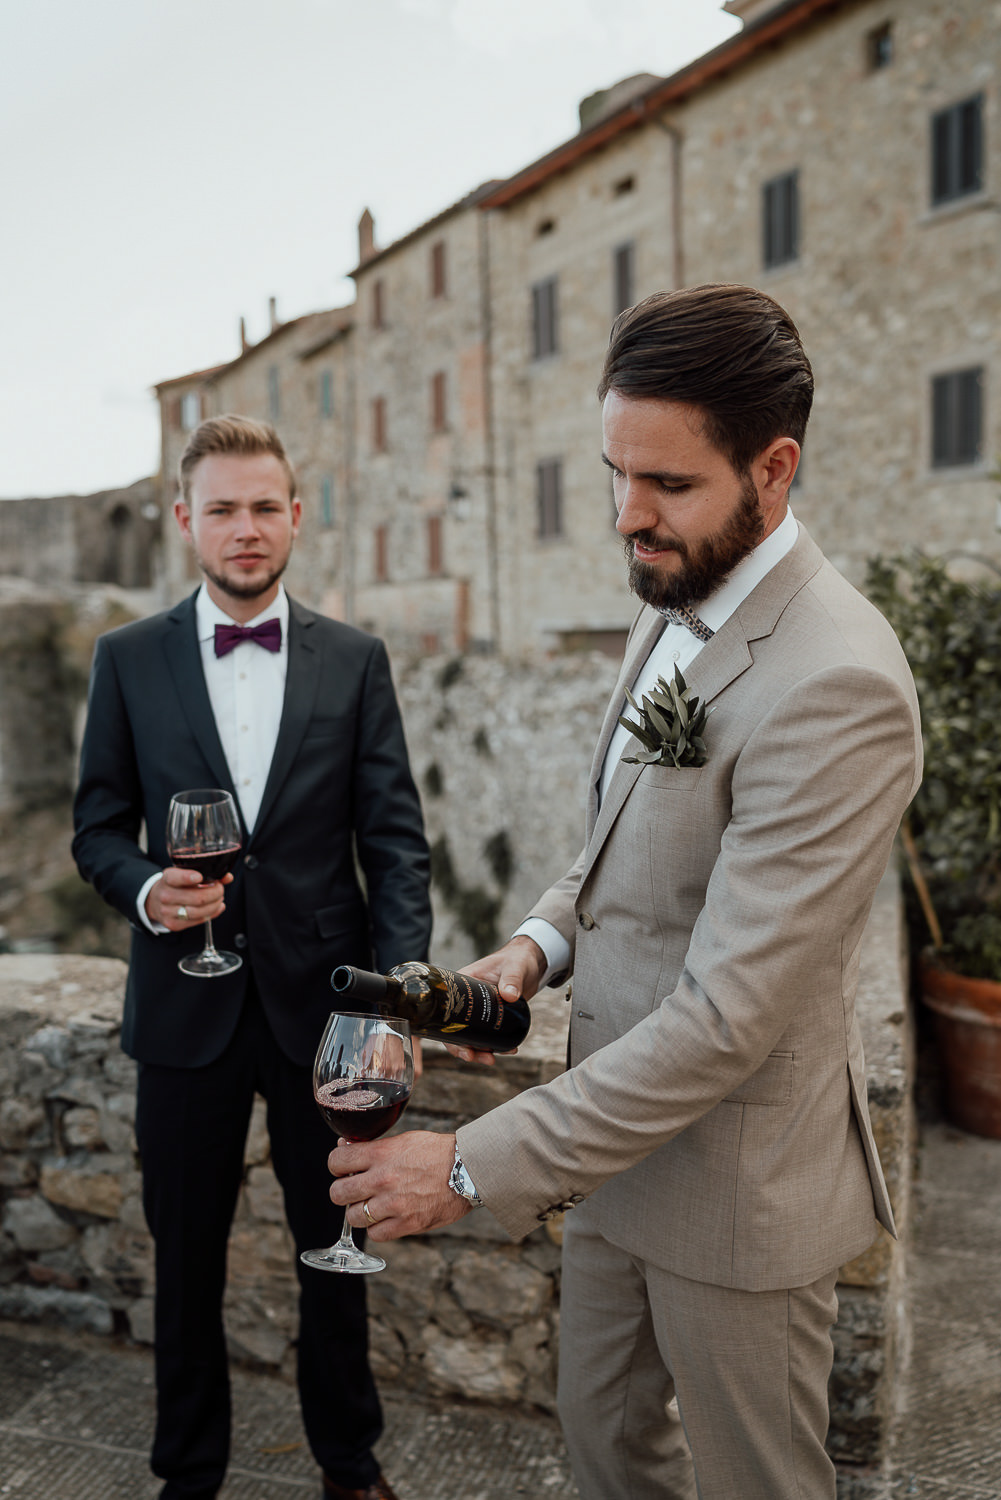 amsterdam wedding photography groom pours wine in tuscany at destination wedding